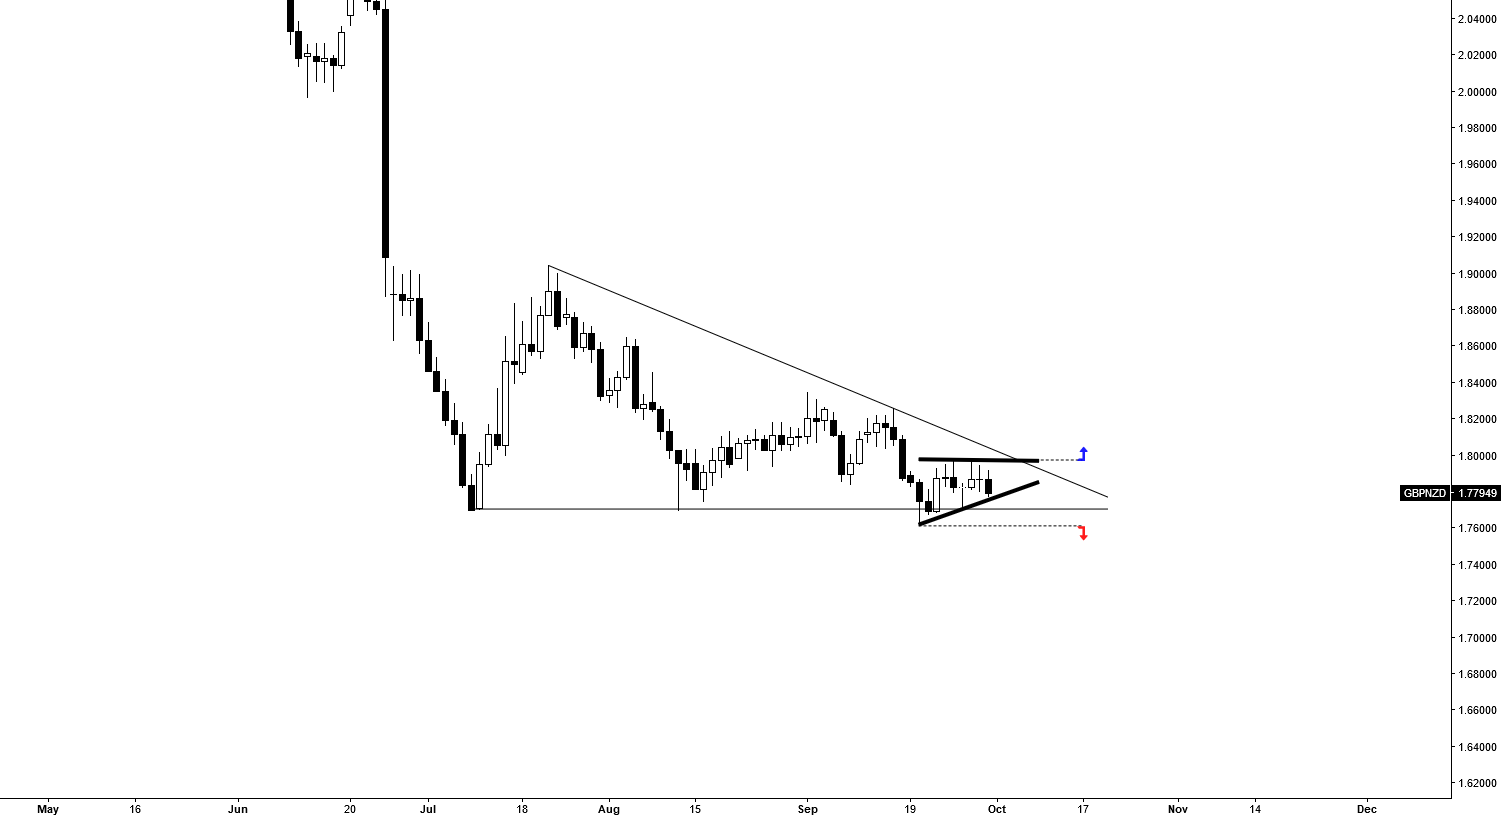 MINOR ASCENDING TRIANGLE @ APEX OF MEGA DESCENDING TRIANGLE